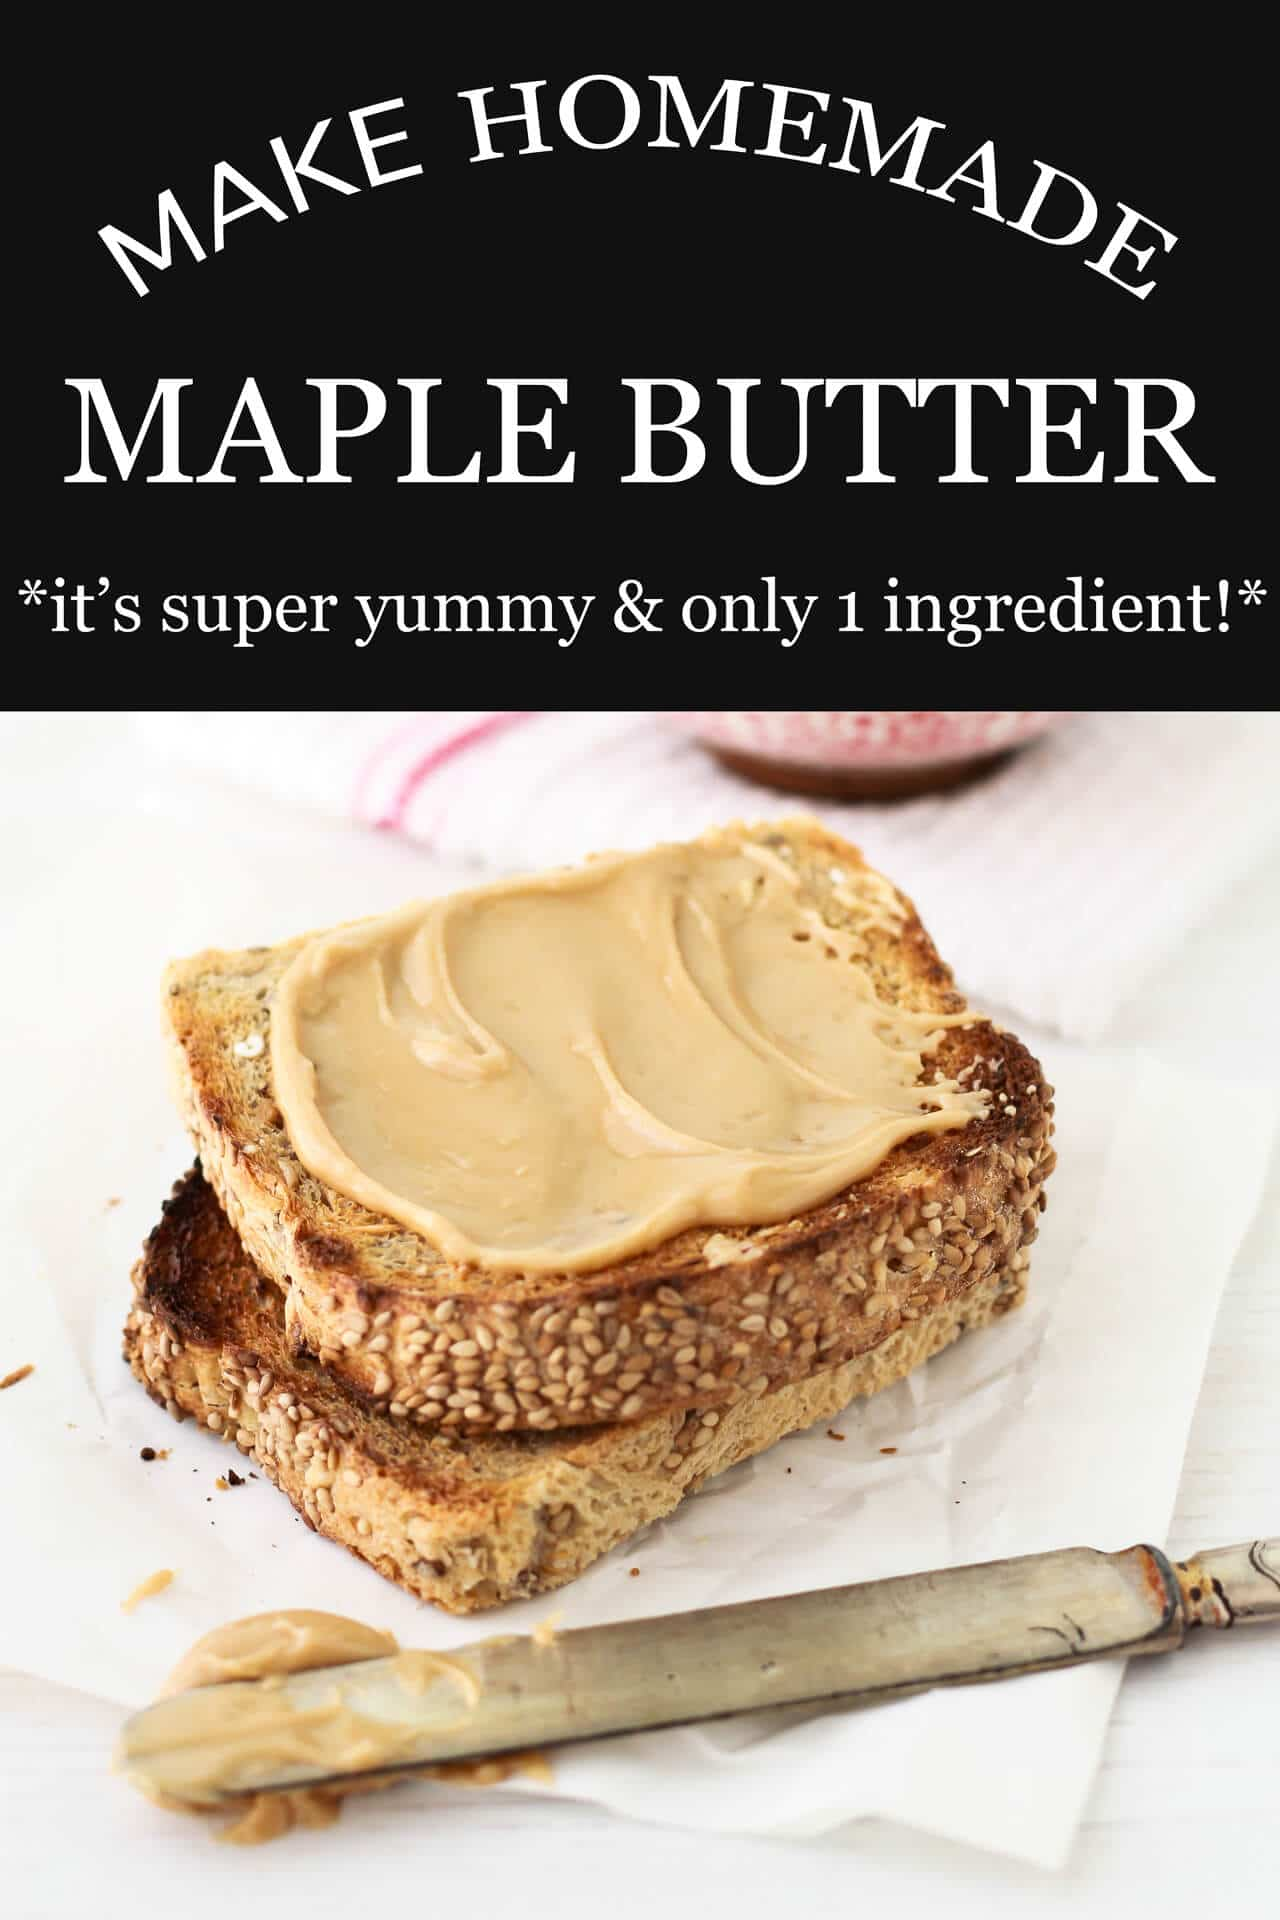 homemade maple butter spread onto whole grain toast